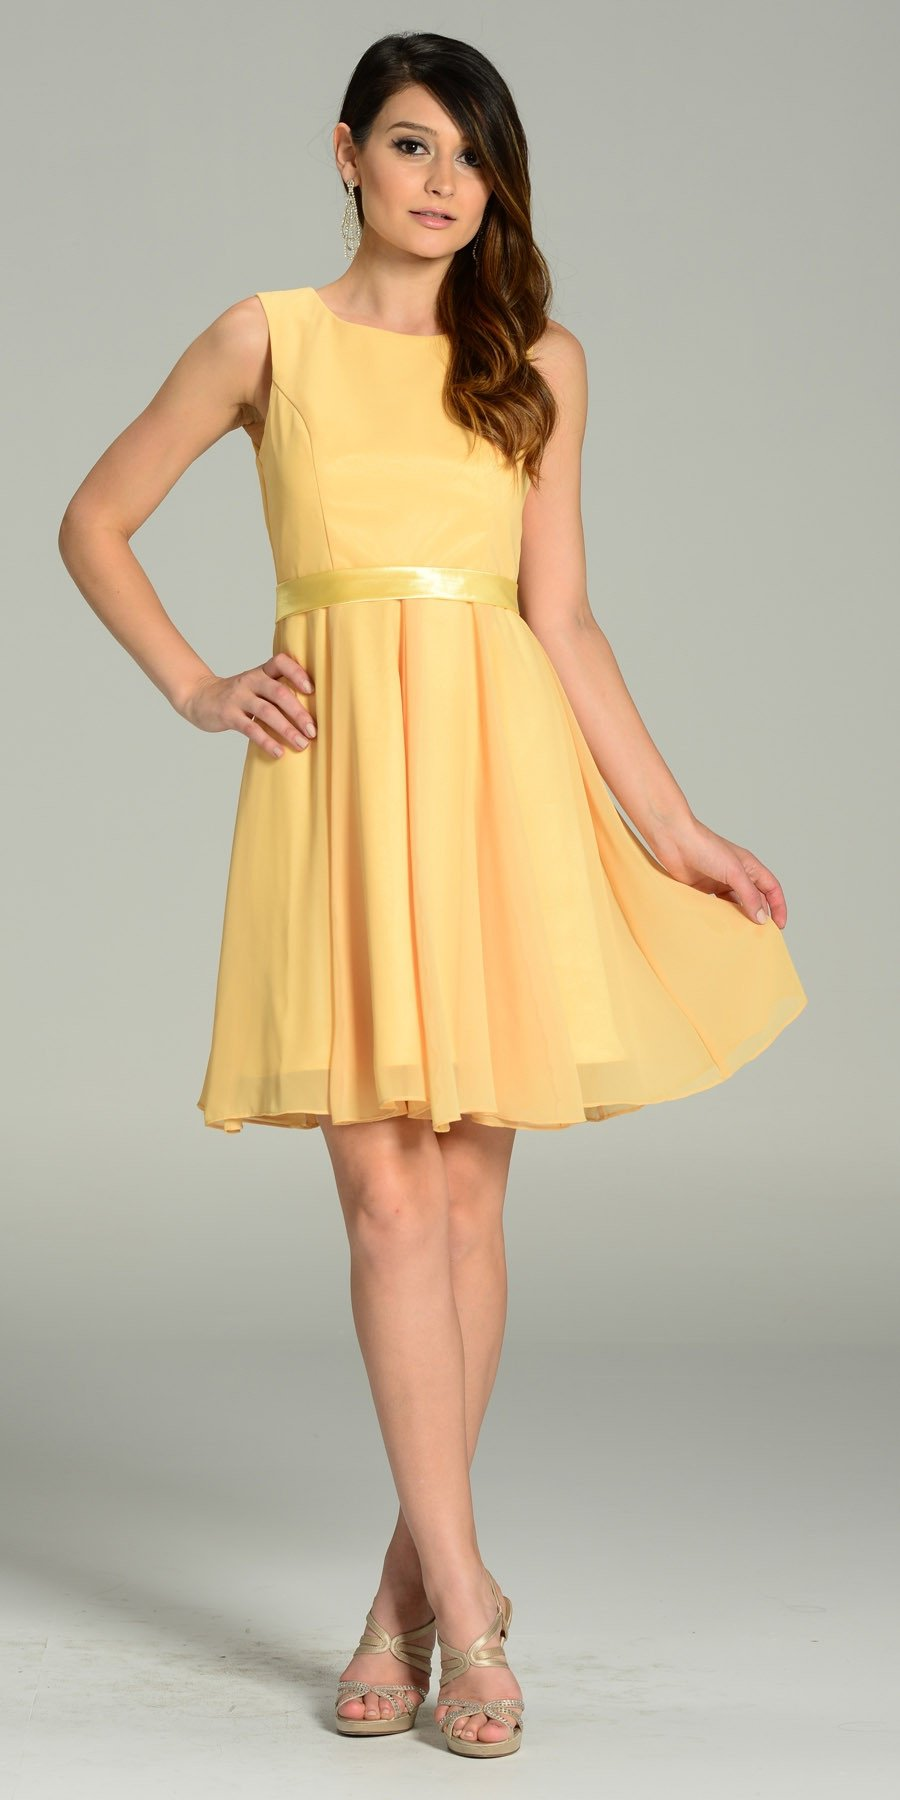 5411ad75067 Modest Yellow Semi Formal Chiffon Dress Knee Length A Line. Tap to expand